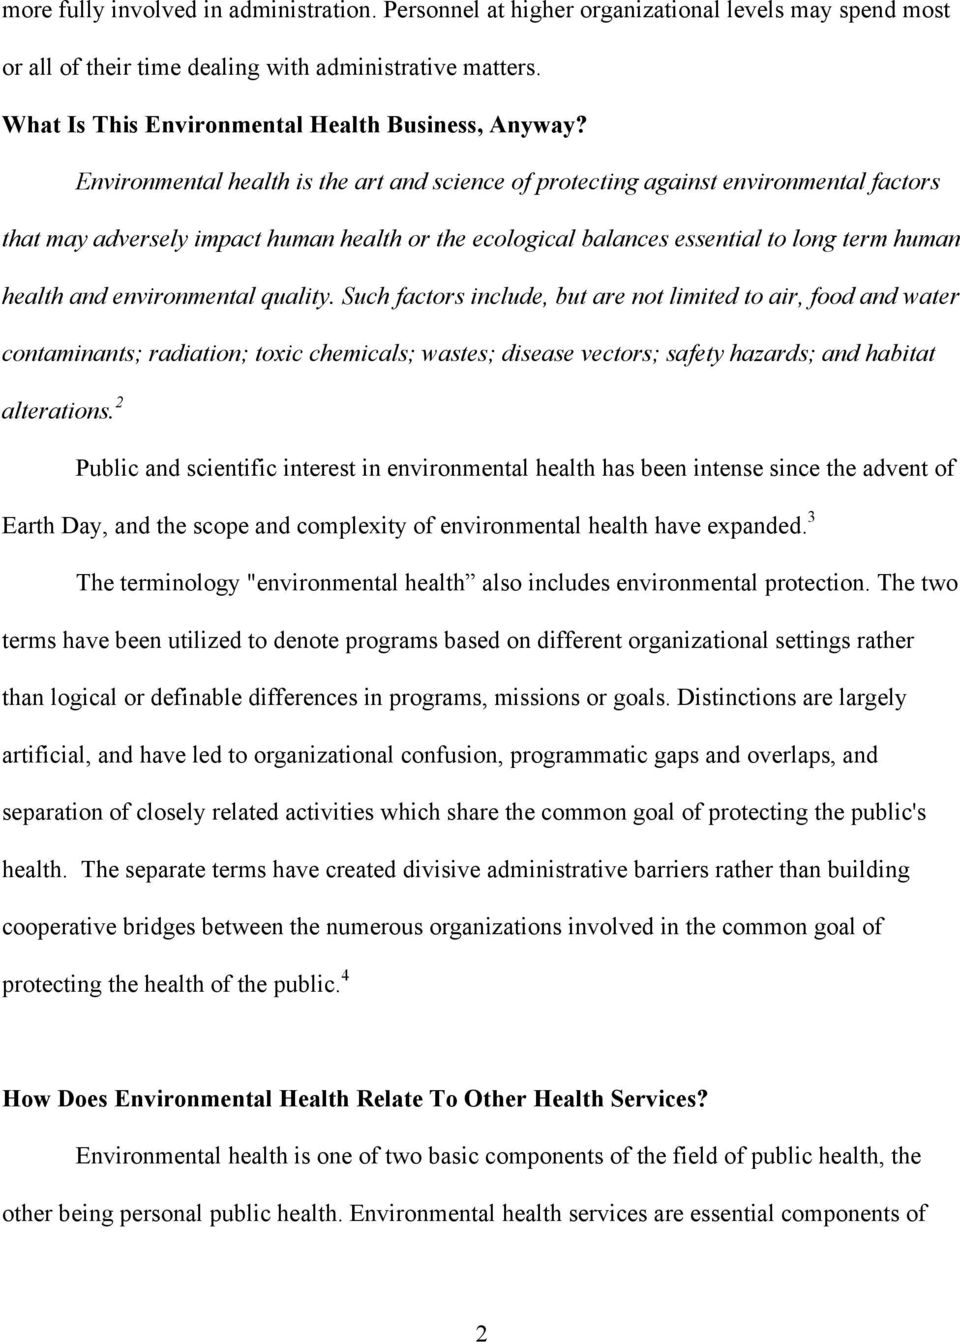 Environmental health is the art and science of protecting against environmental factors that may adversely impact human health or the ecological balances essential to long term human health and